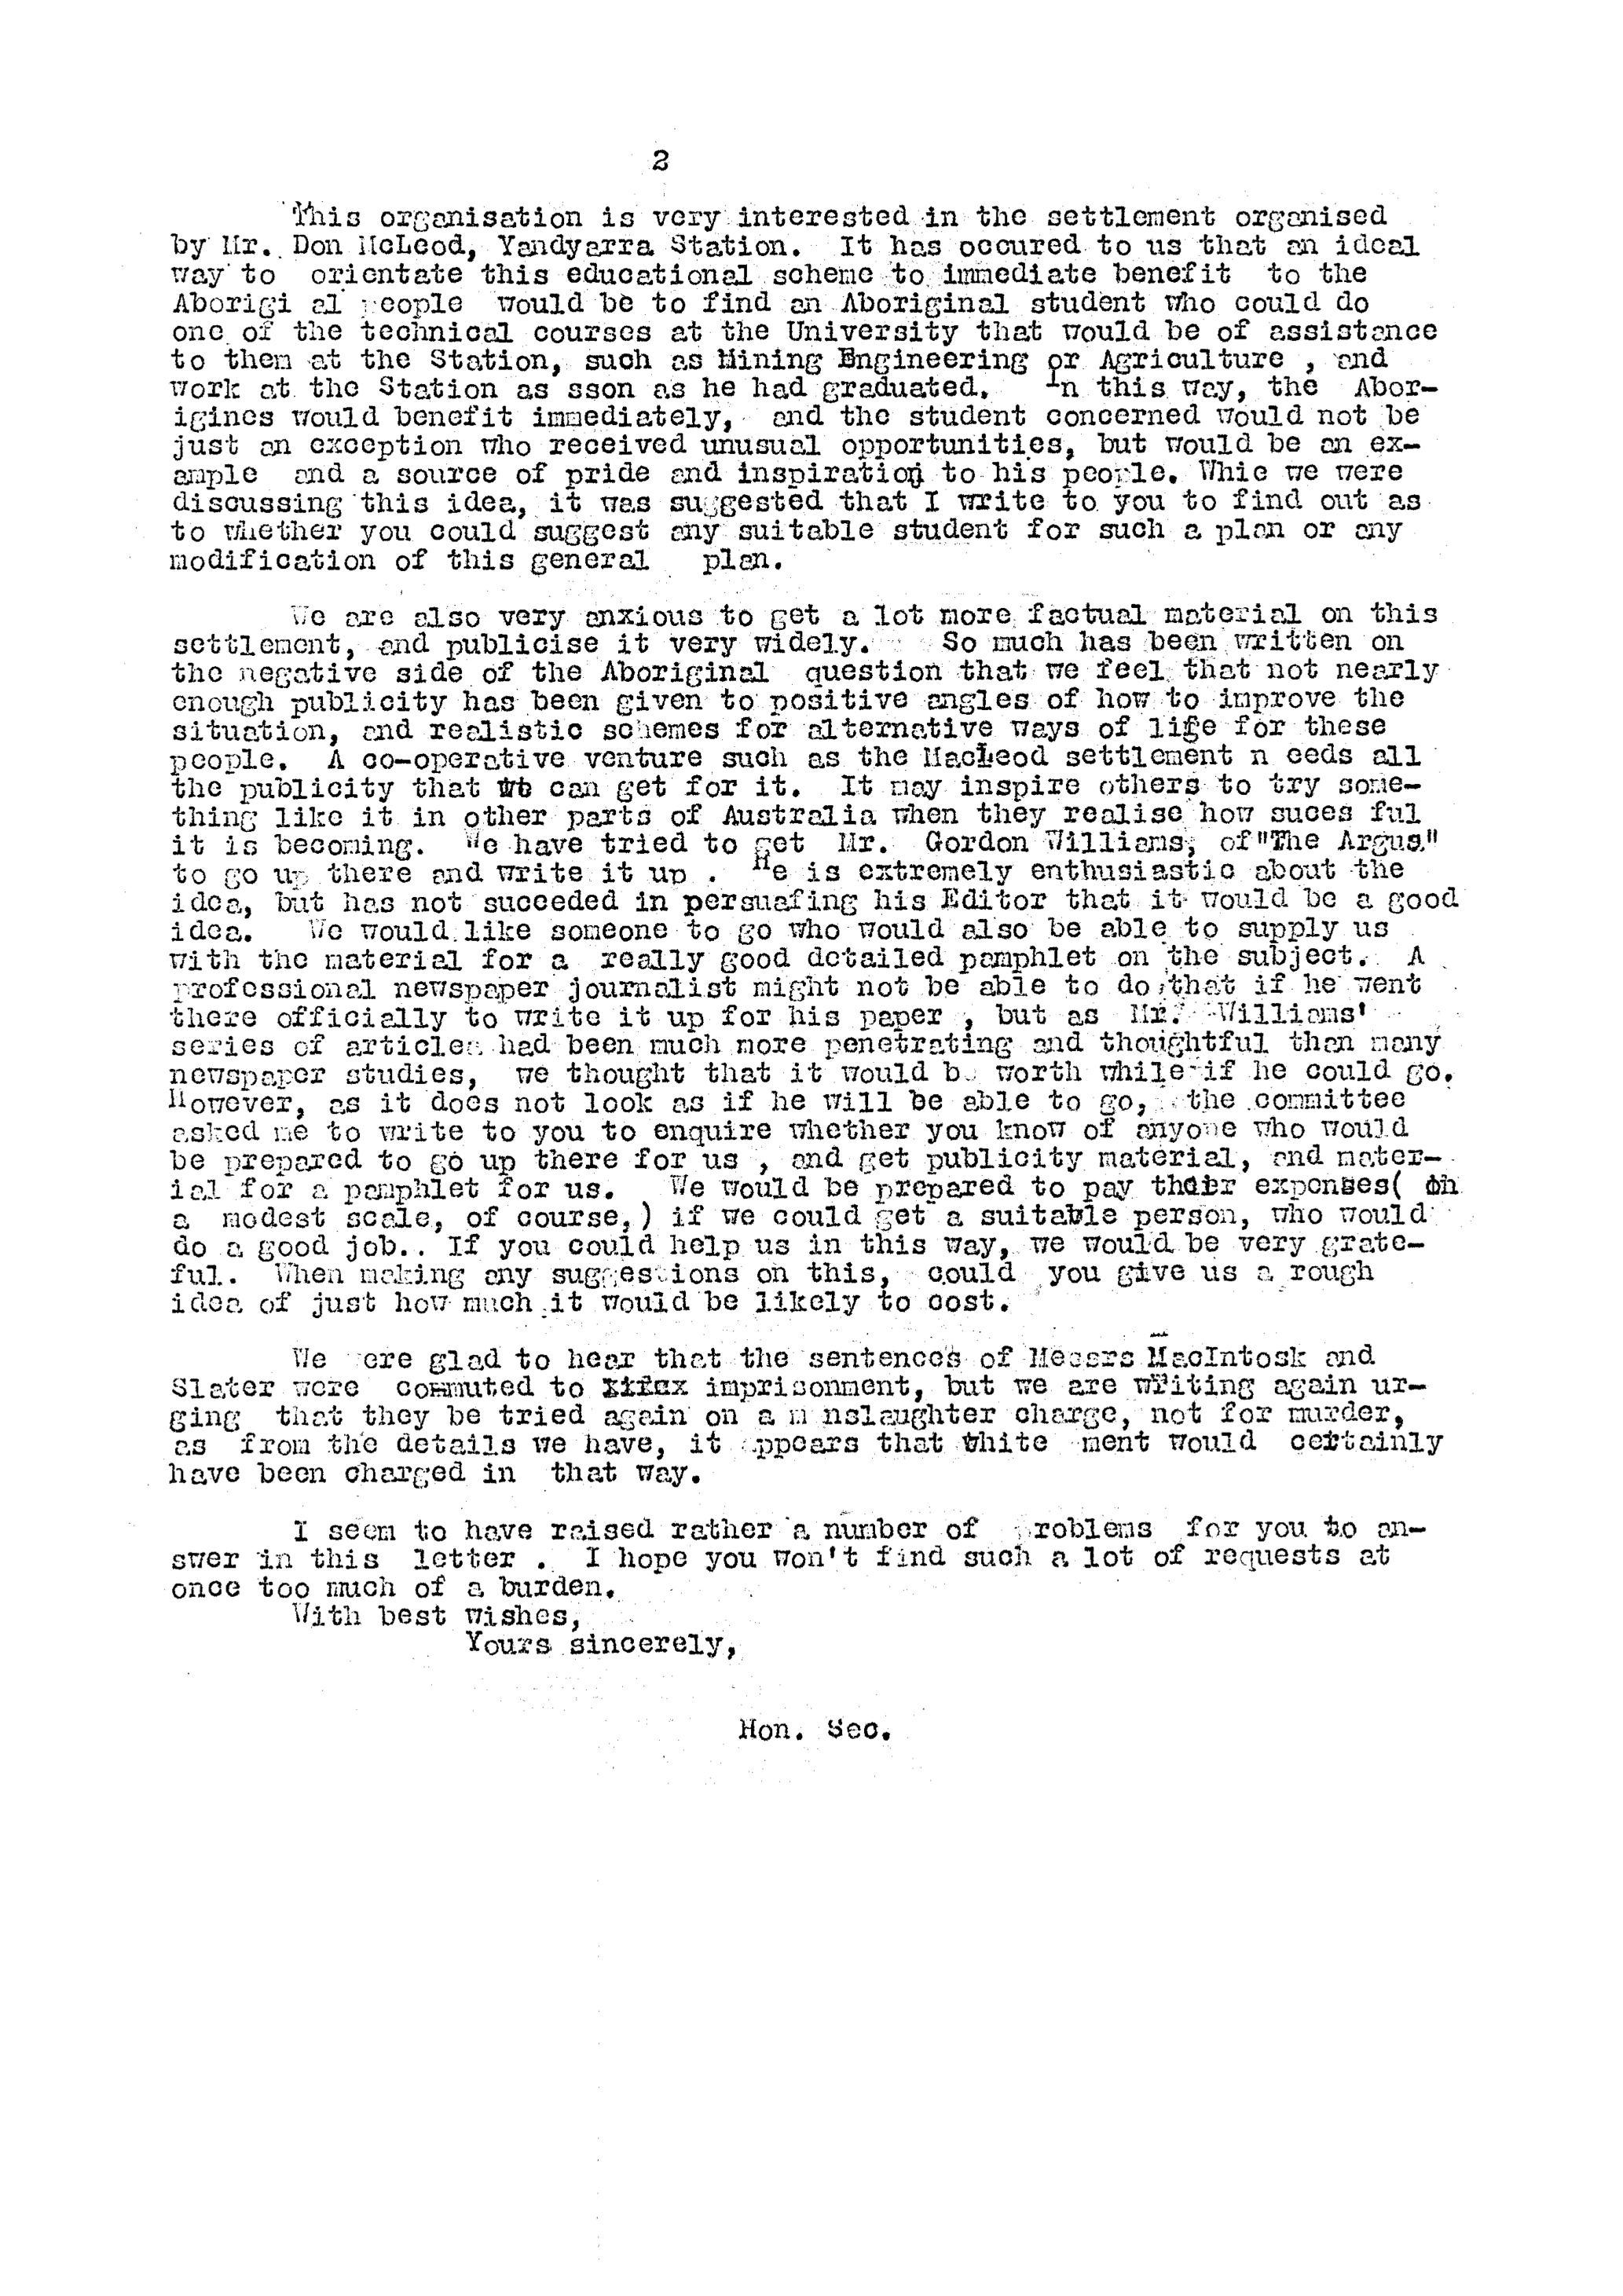 Excerpt of Shirley Andrews to Alfred Jacobs, 21 July 1953, Records of the Narrogin Native Welfare Committee, State Library of Western Australia, MS 3797A/58